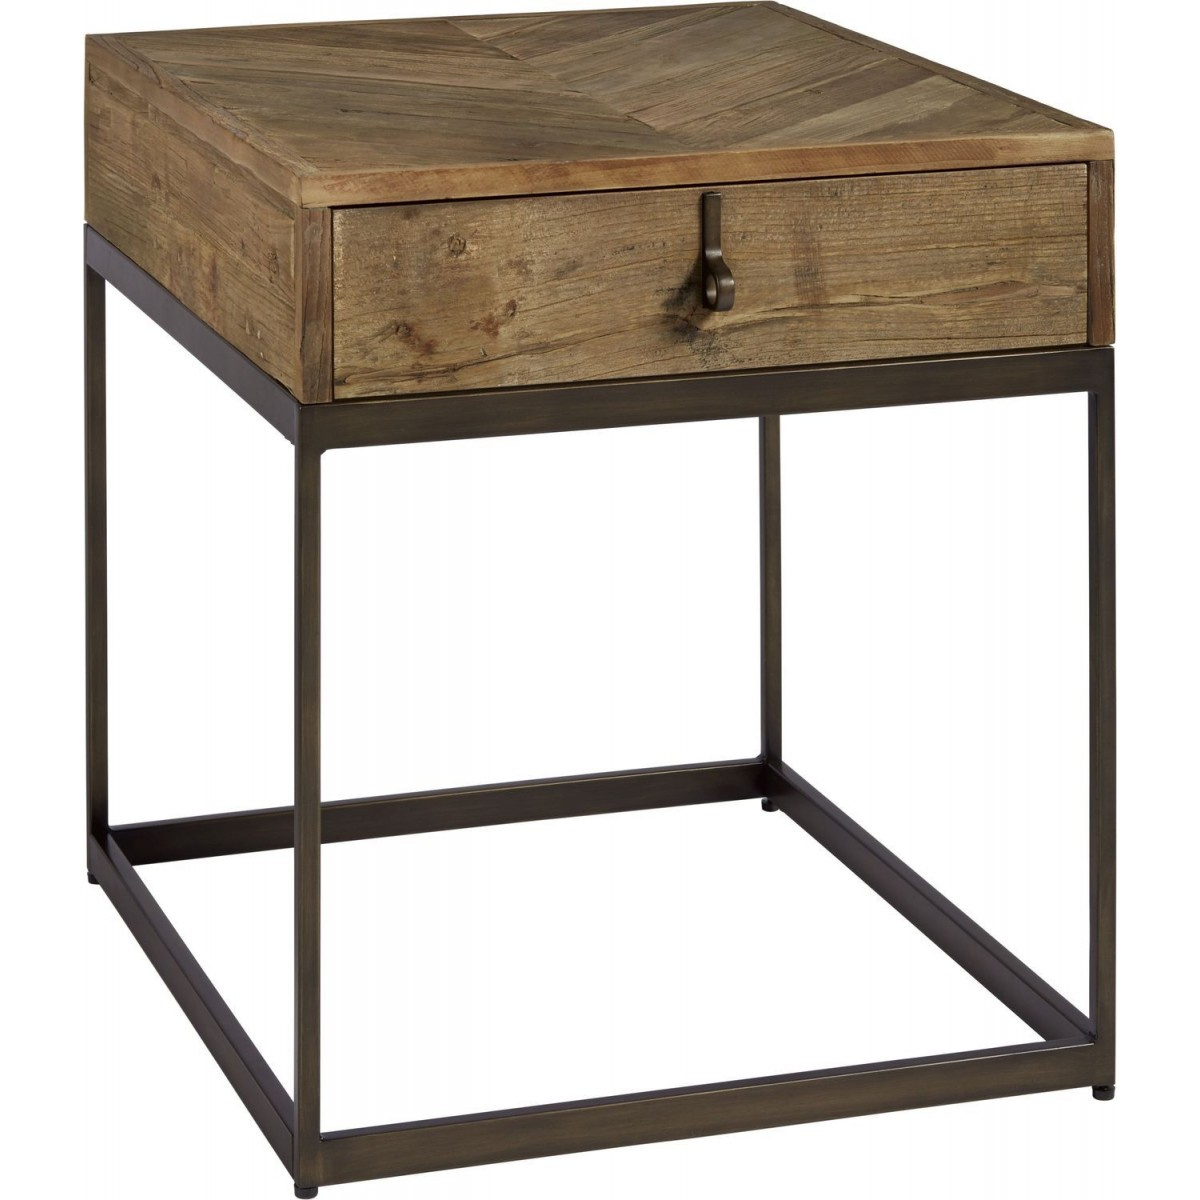 universal furniture curated langston end table rustic elm angle tables indoor lighting west wall decor log living room royal uae console with chairs underneath distressed wood mid